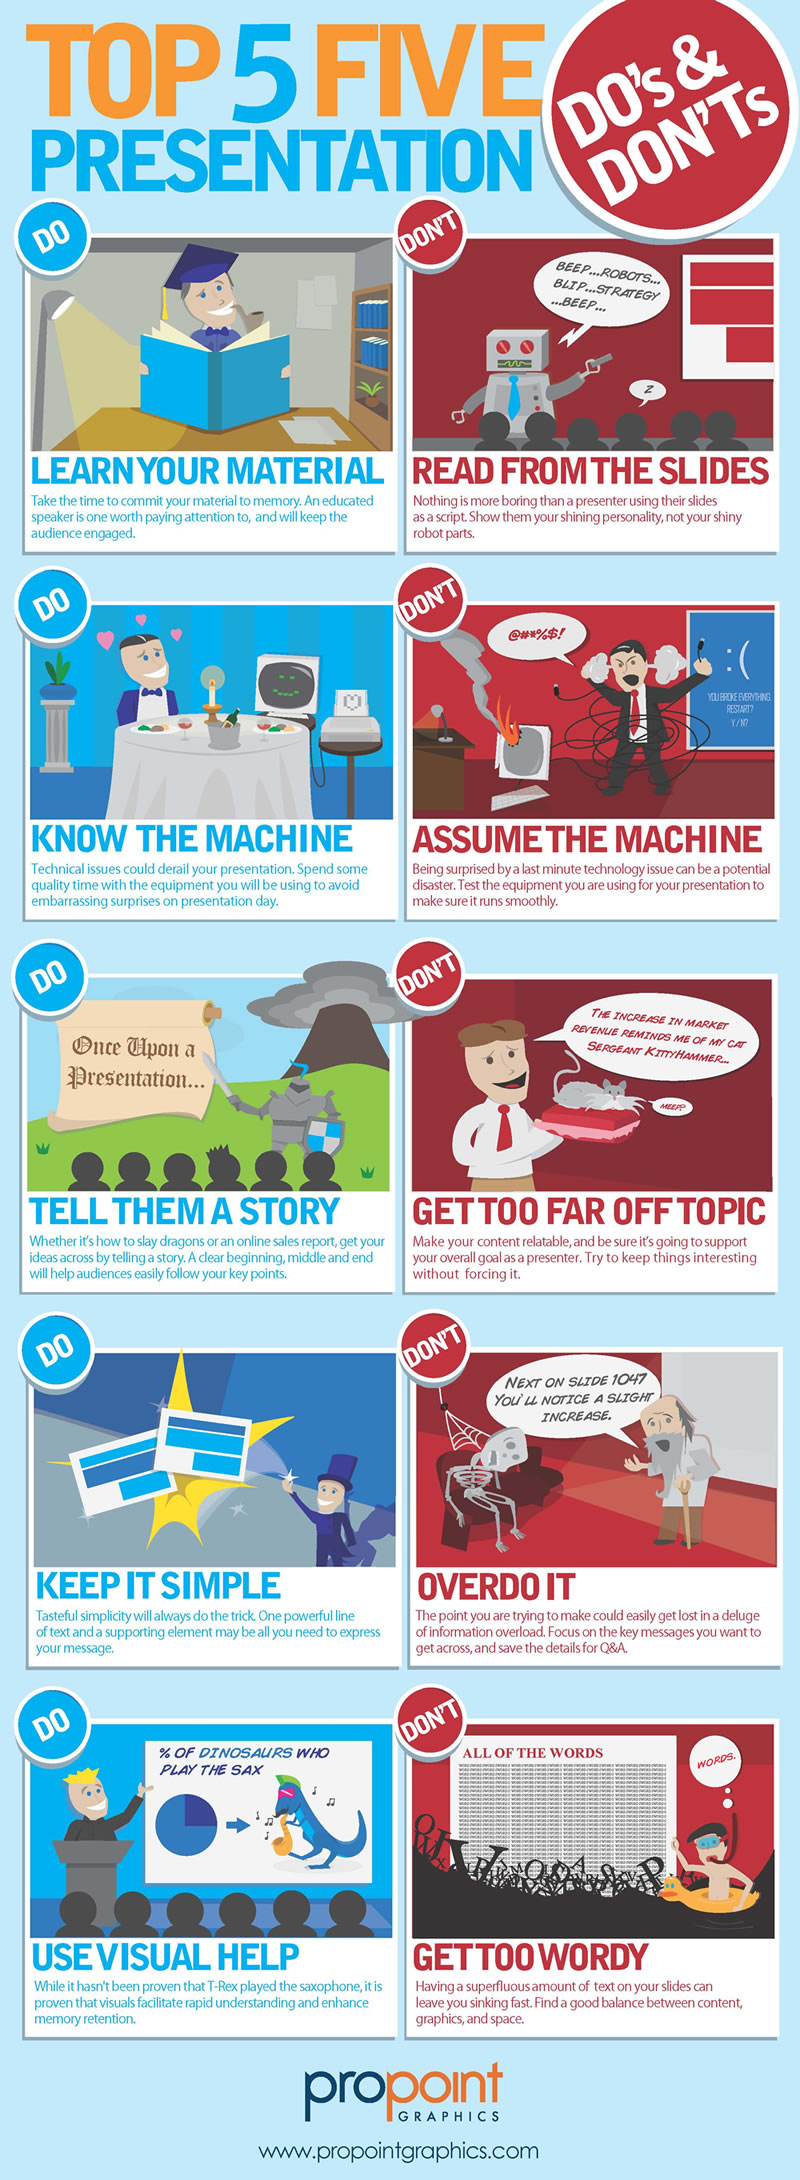 Infographic of Top five Presentation Dos and Don'ts. Learn Your Material, Don't read from slides, Do know the machine. Don't assume the machine. Do tell them a story. Don't get too far off topic. Do keep it simple. Don't overdo it. Do use visual help. Don't get too wordy